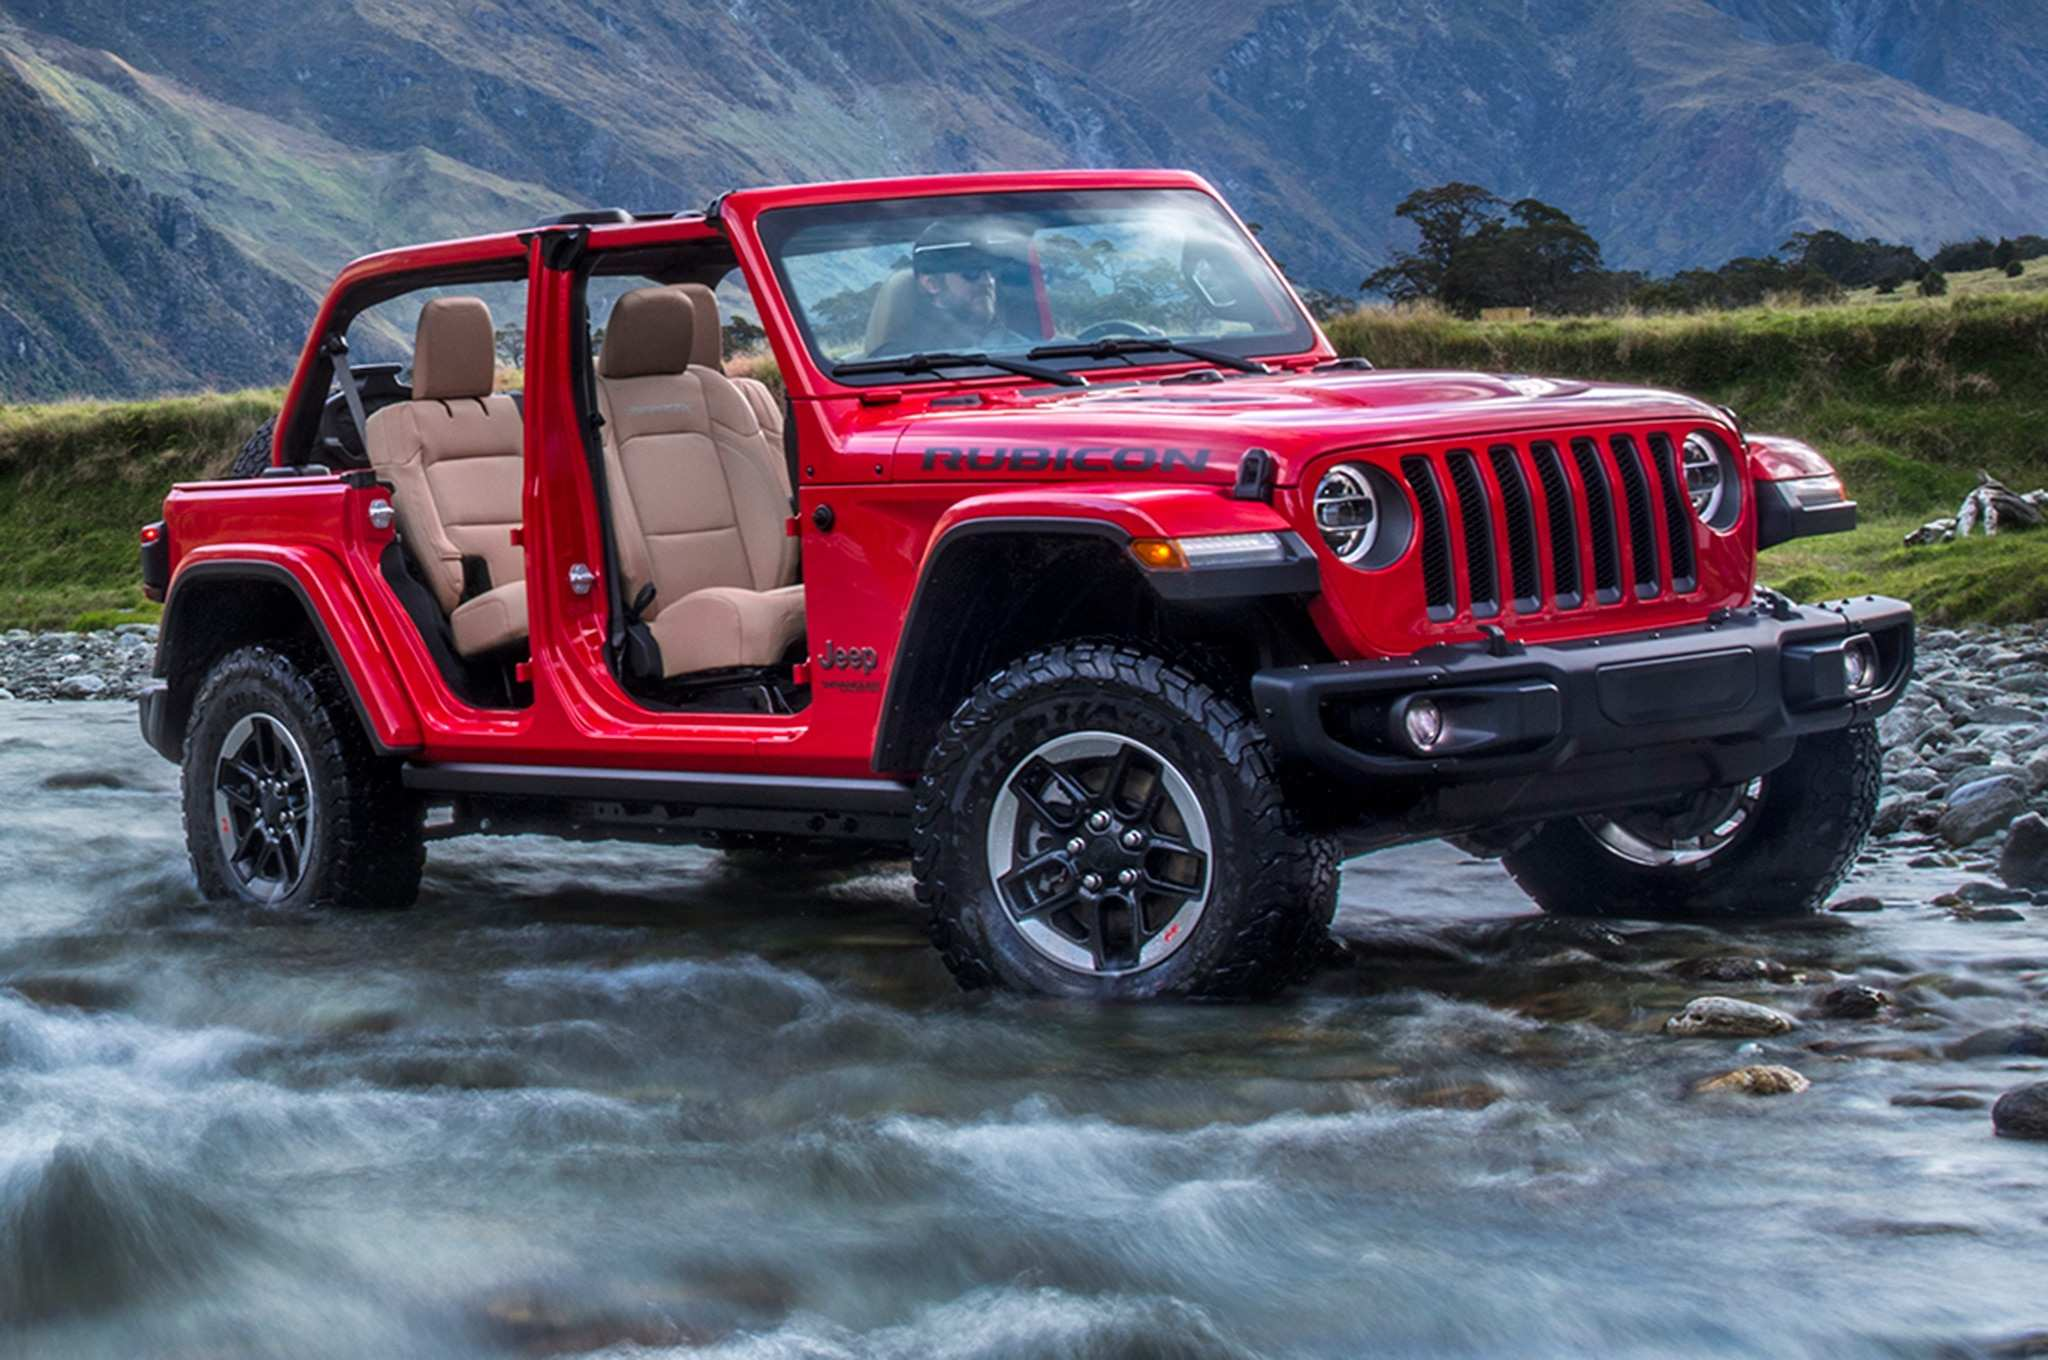 86 Best Review 2020 Jeep Wrangler Updates First Drive by 2020 Jeep Wrangler Updates